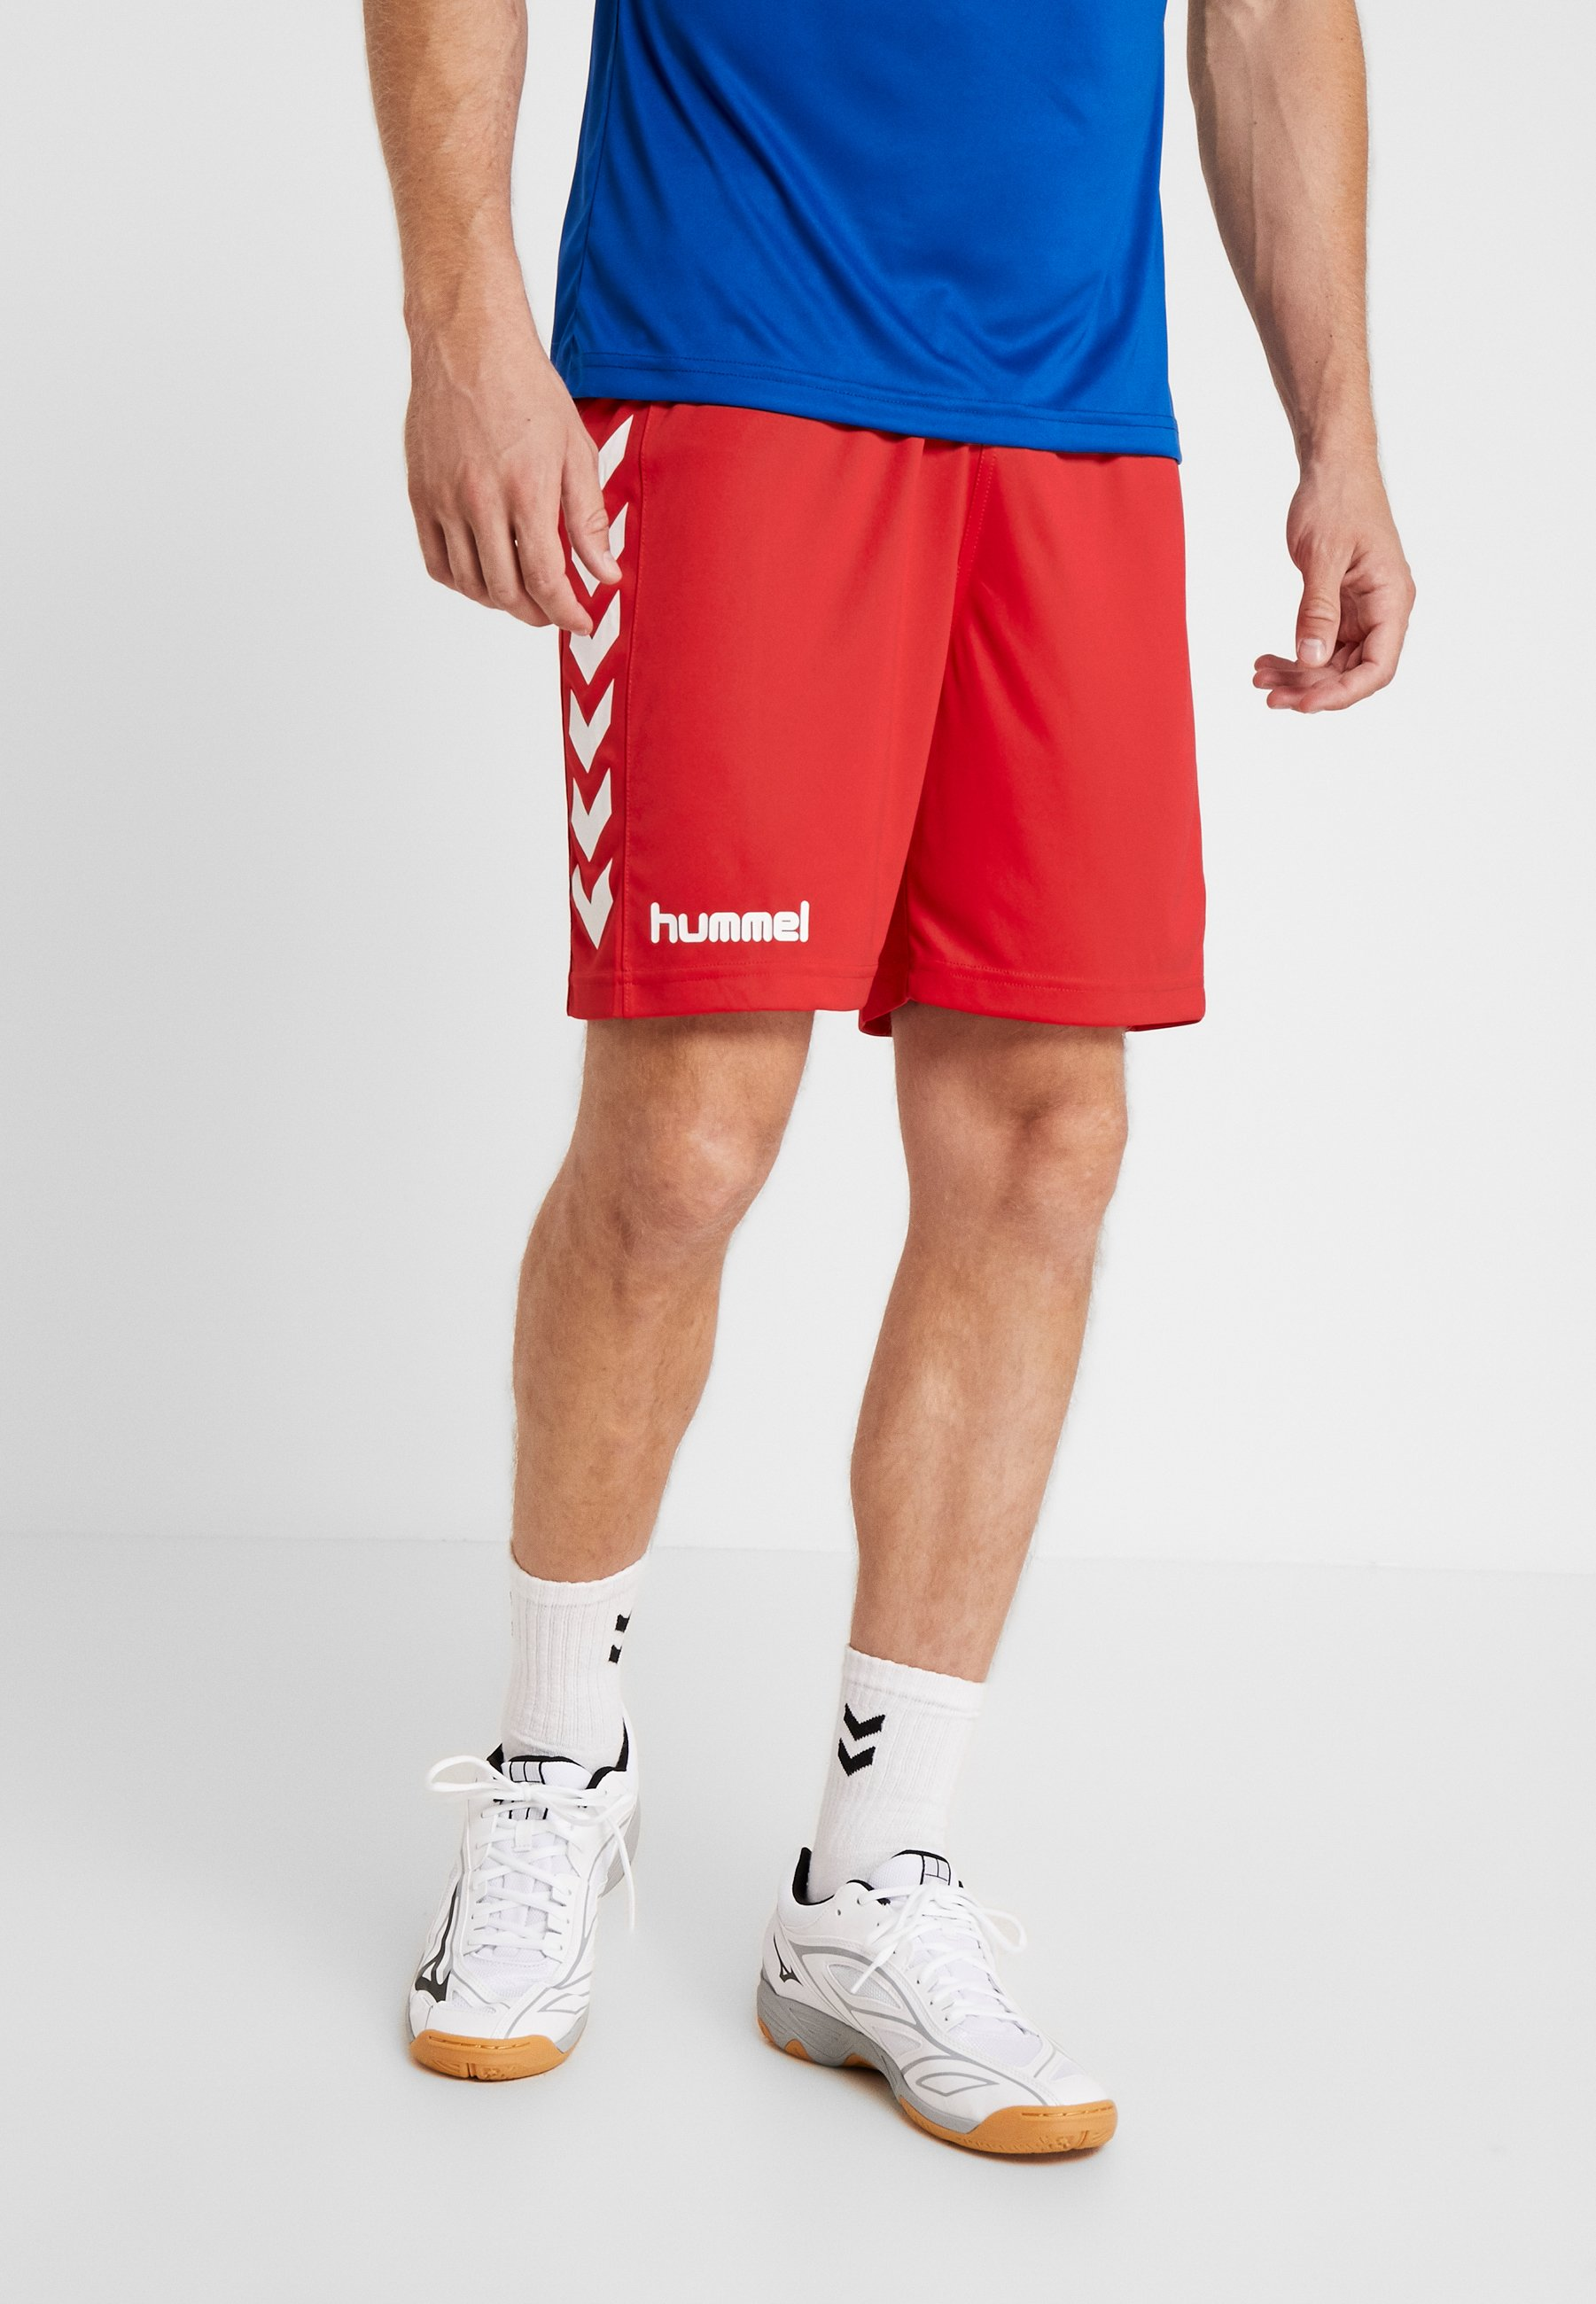 Hummel CORE SHORTS - Short de sport true red pro